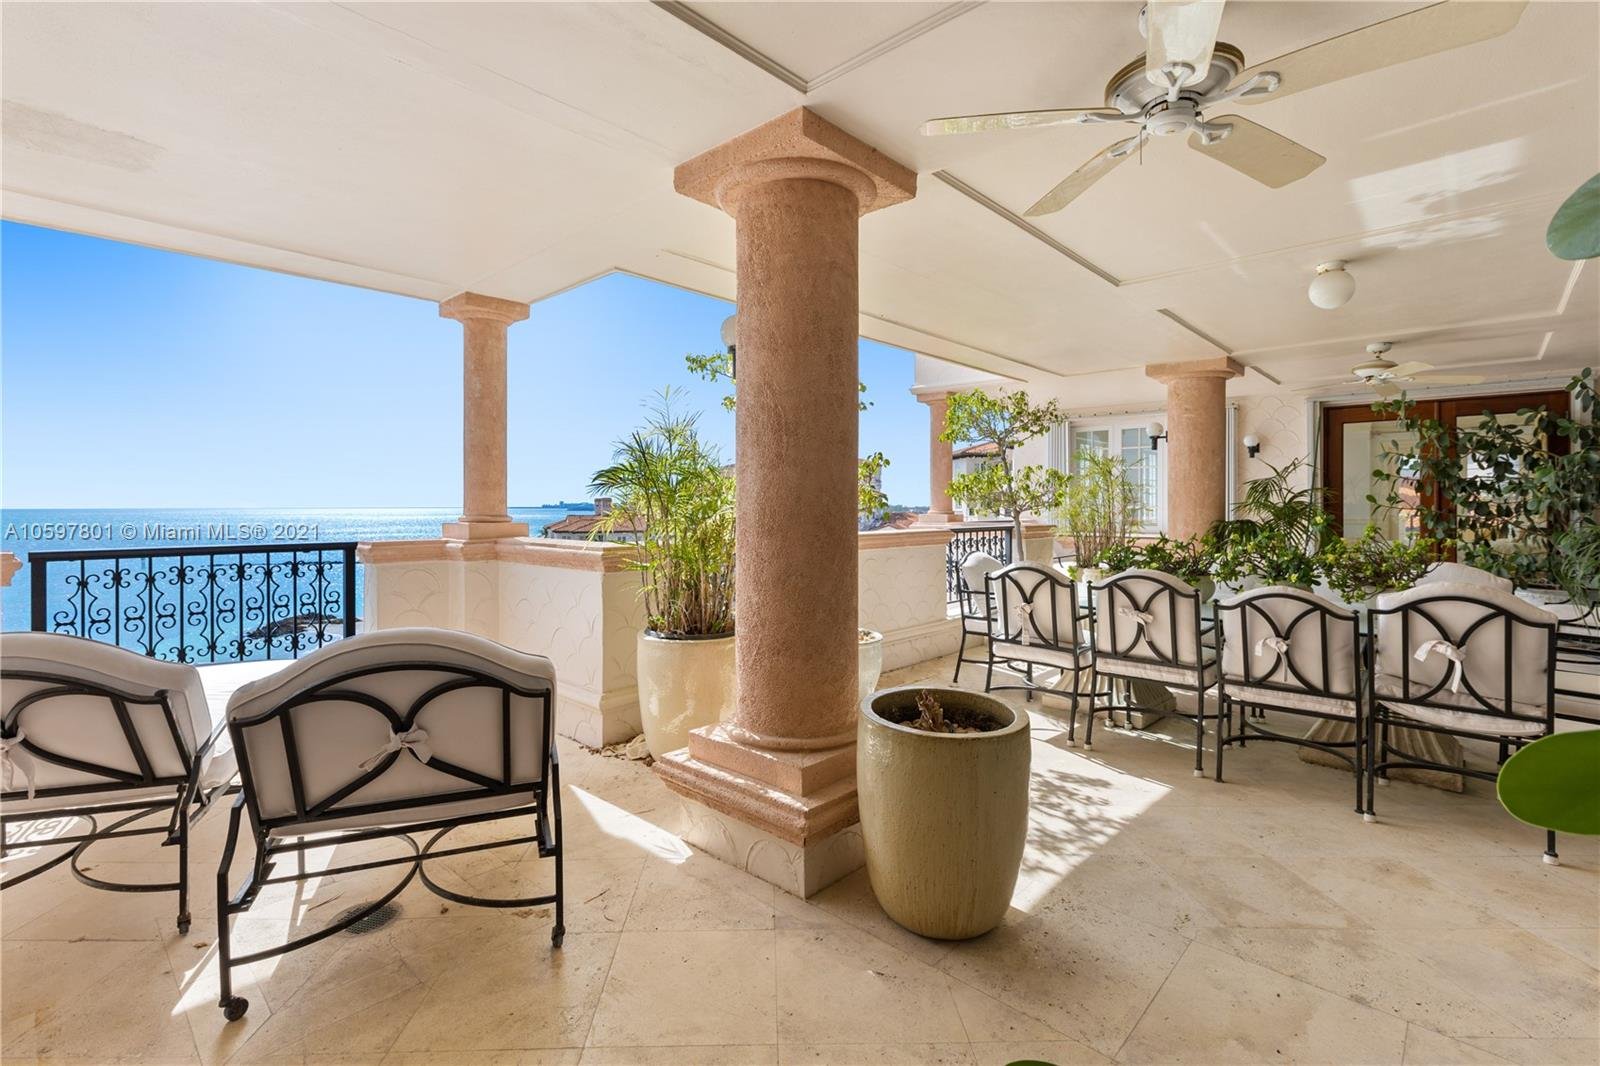 7785 Fisher Island Dr #7785 photo015